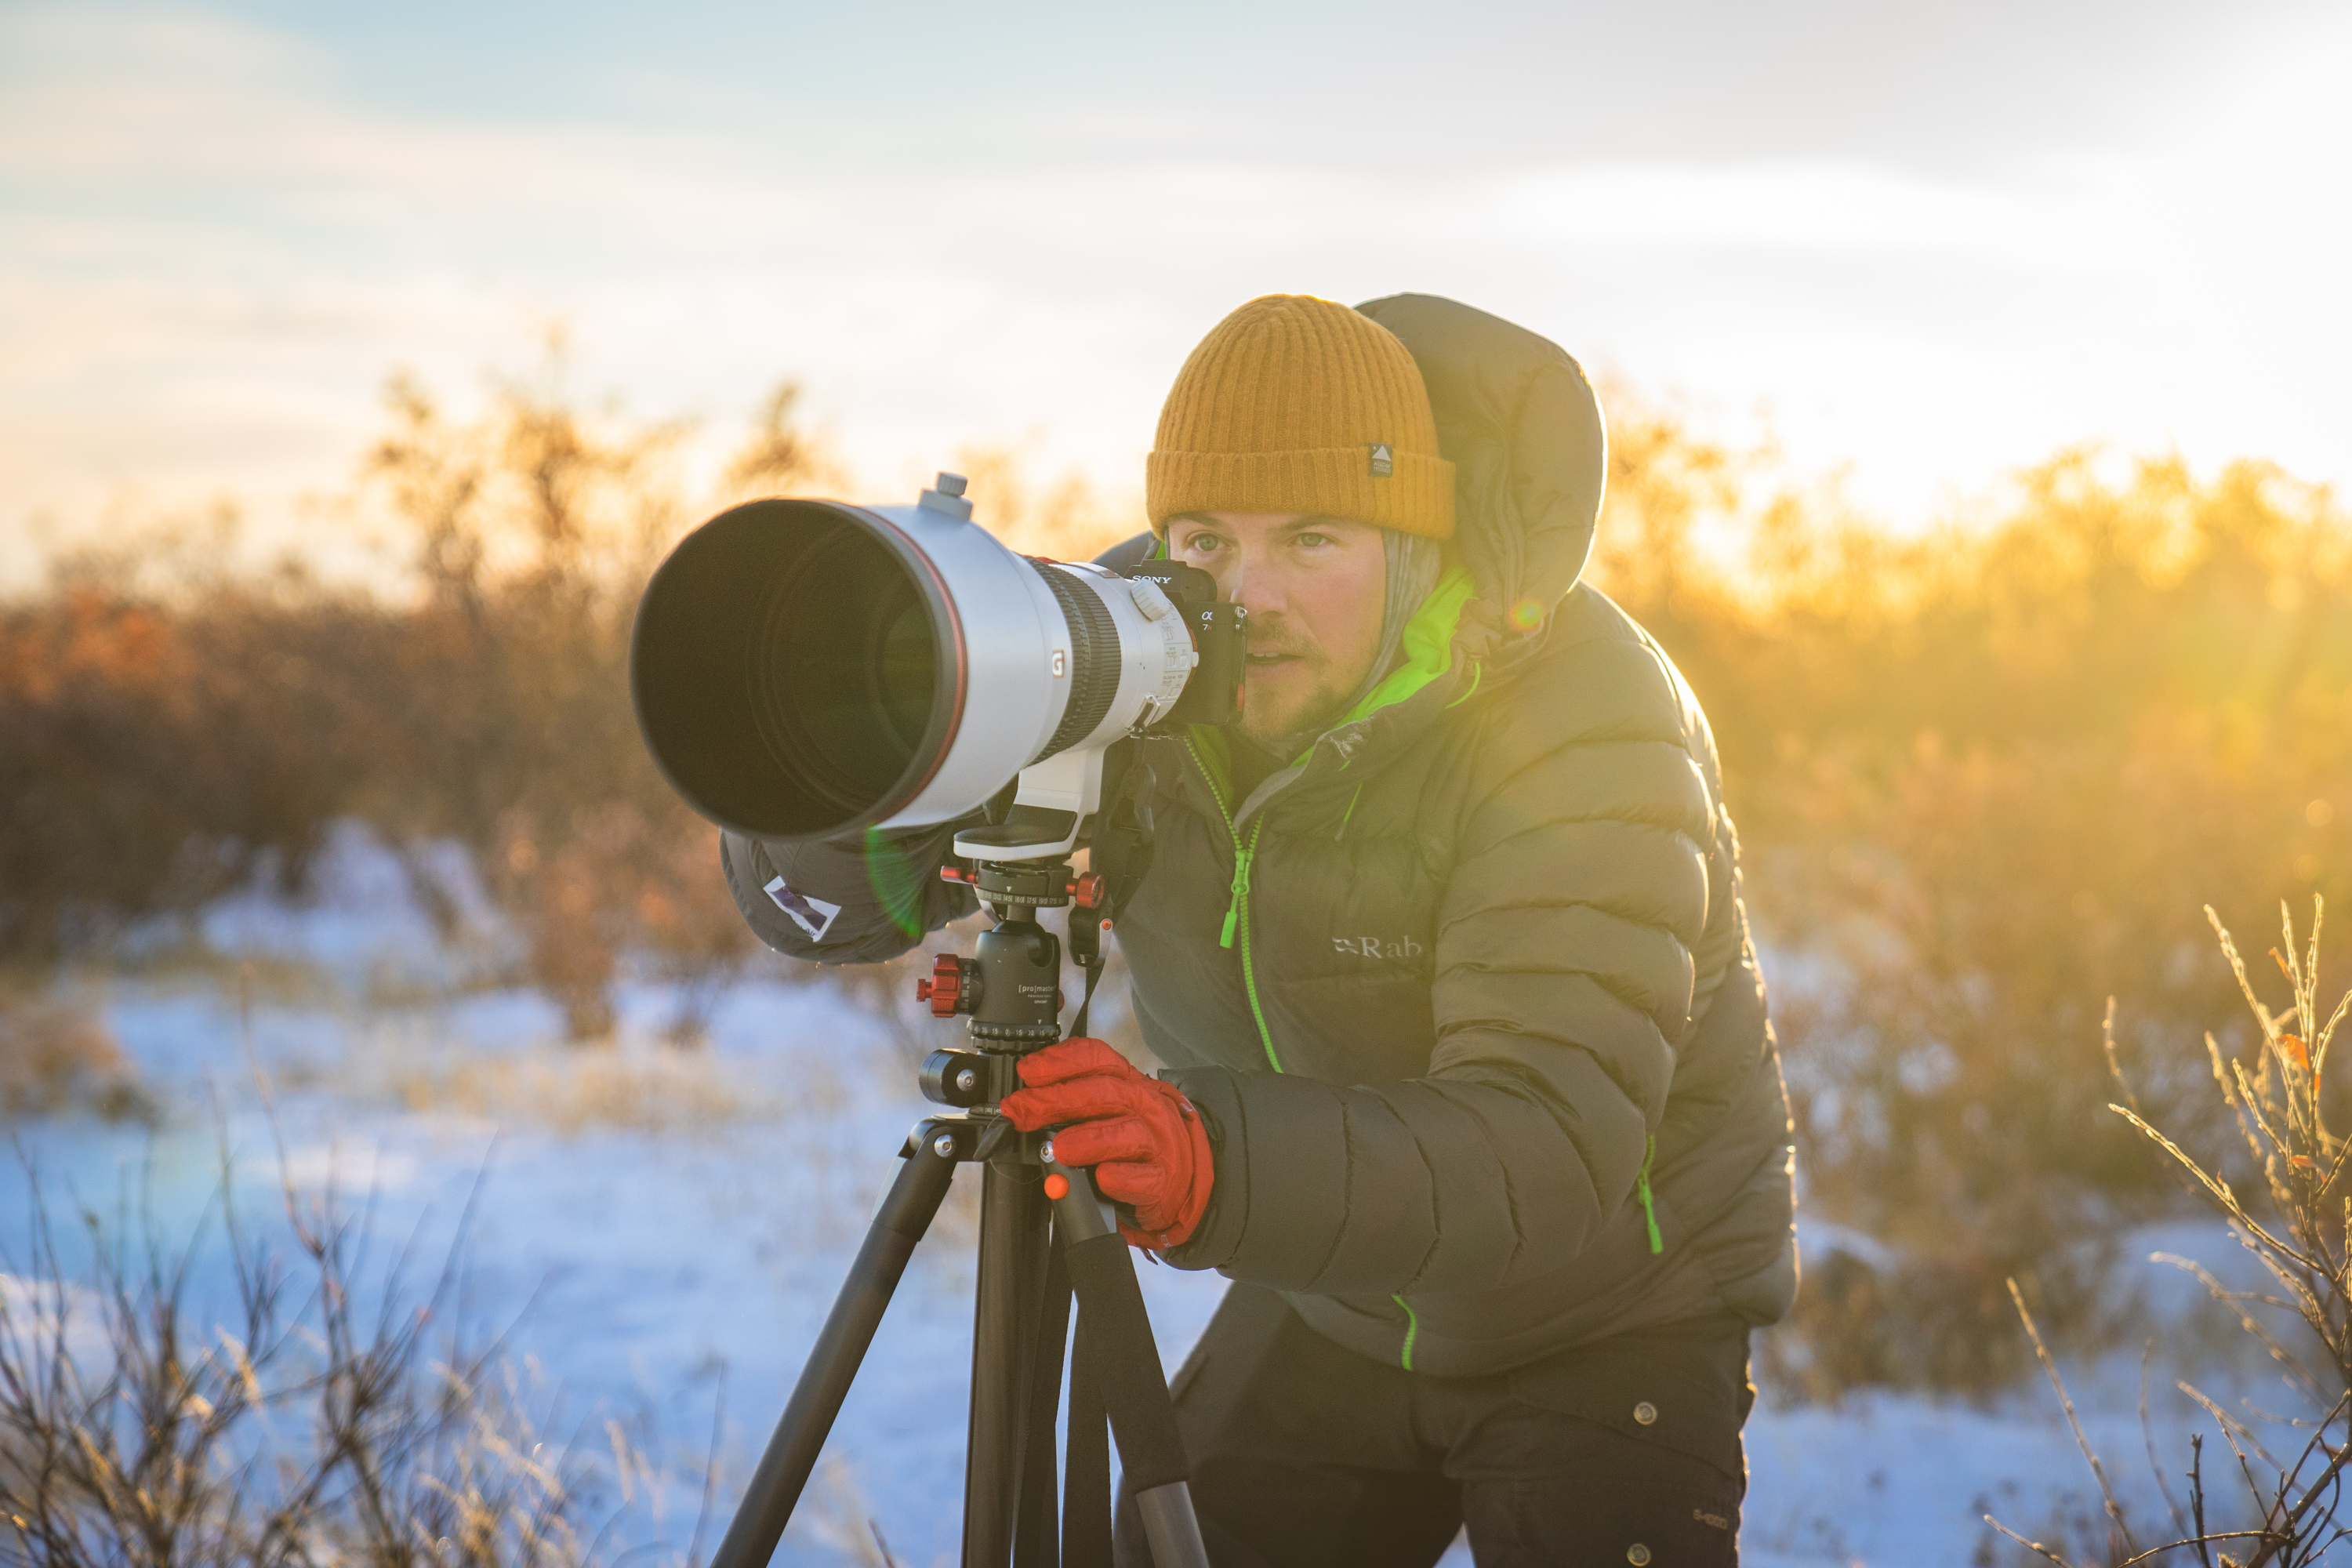 Sony Alpha Collective member and outdoor photographer Nate in the Wild, Nate Luebbe